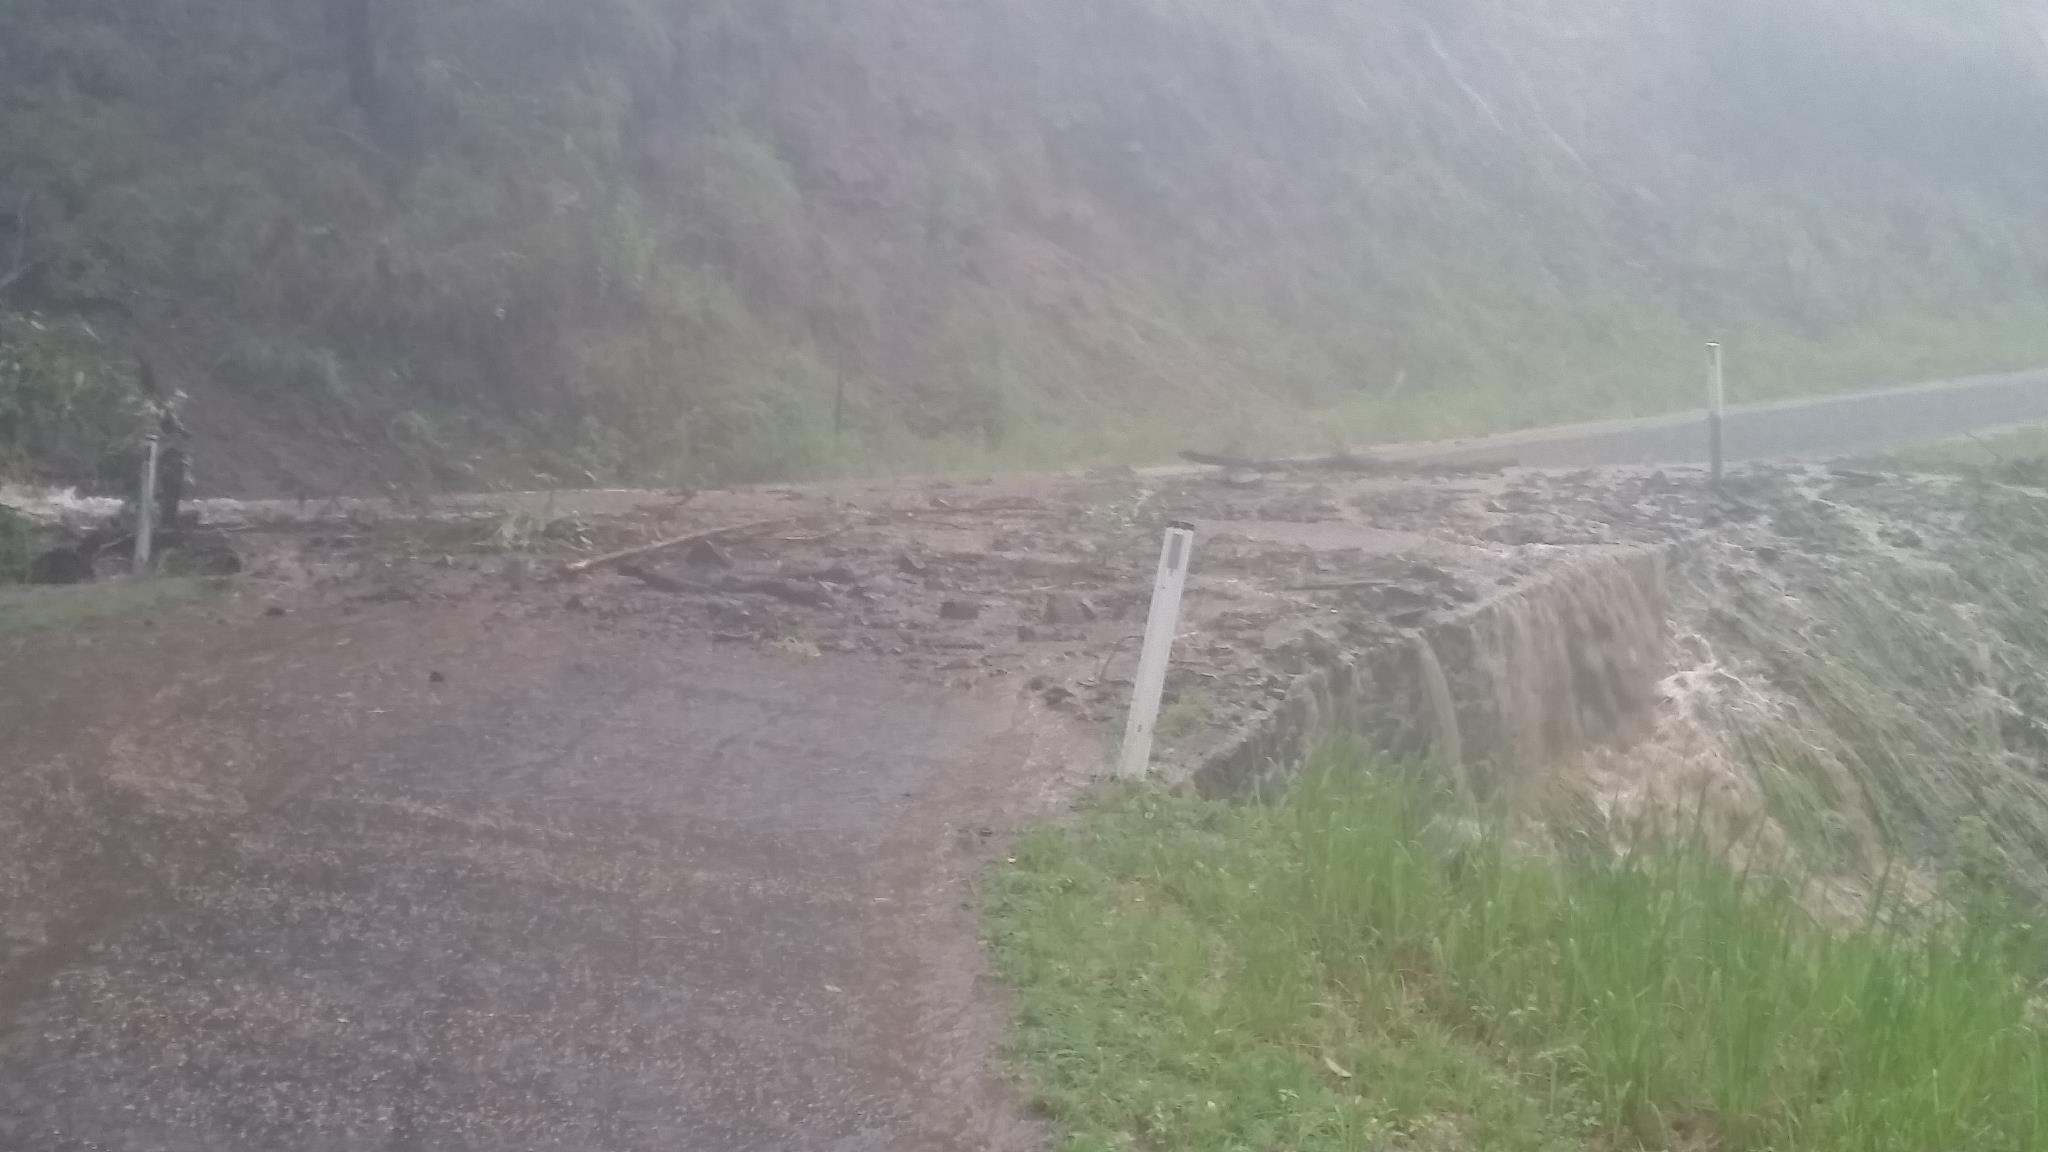 Landslip and Road blockage - Lamington National Park Rd - Cyclone Debbie - 30th March